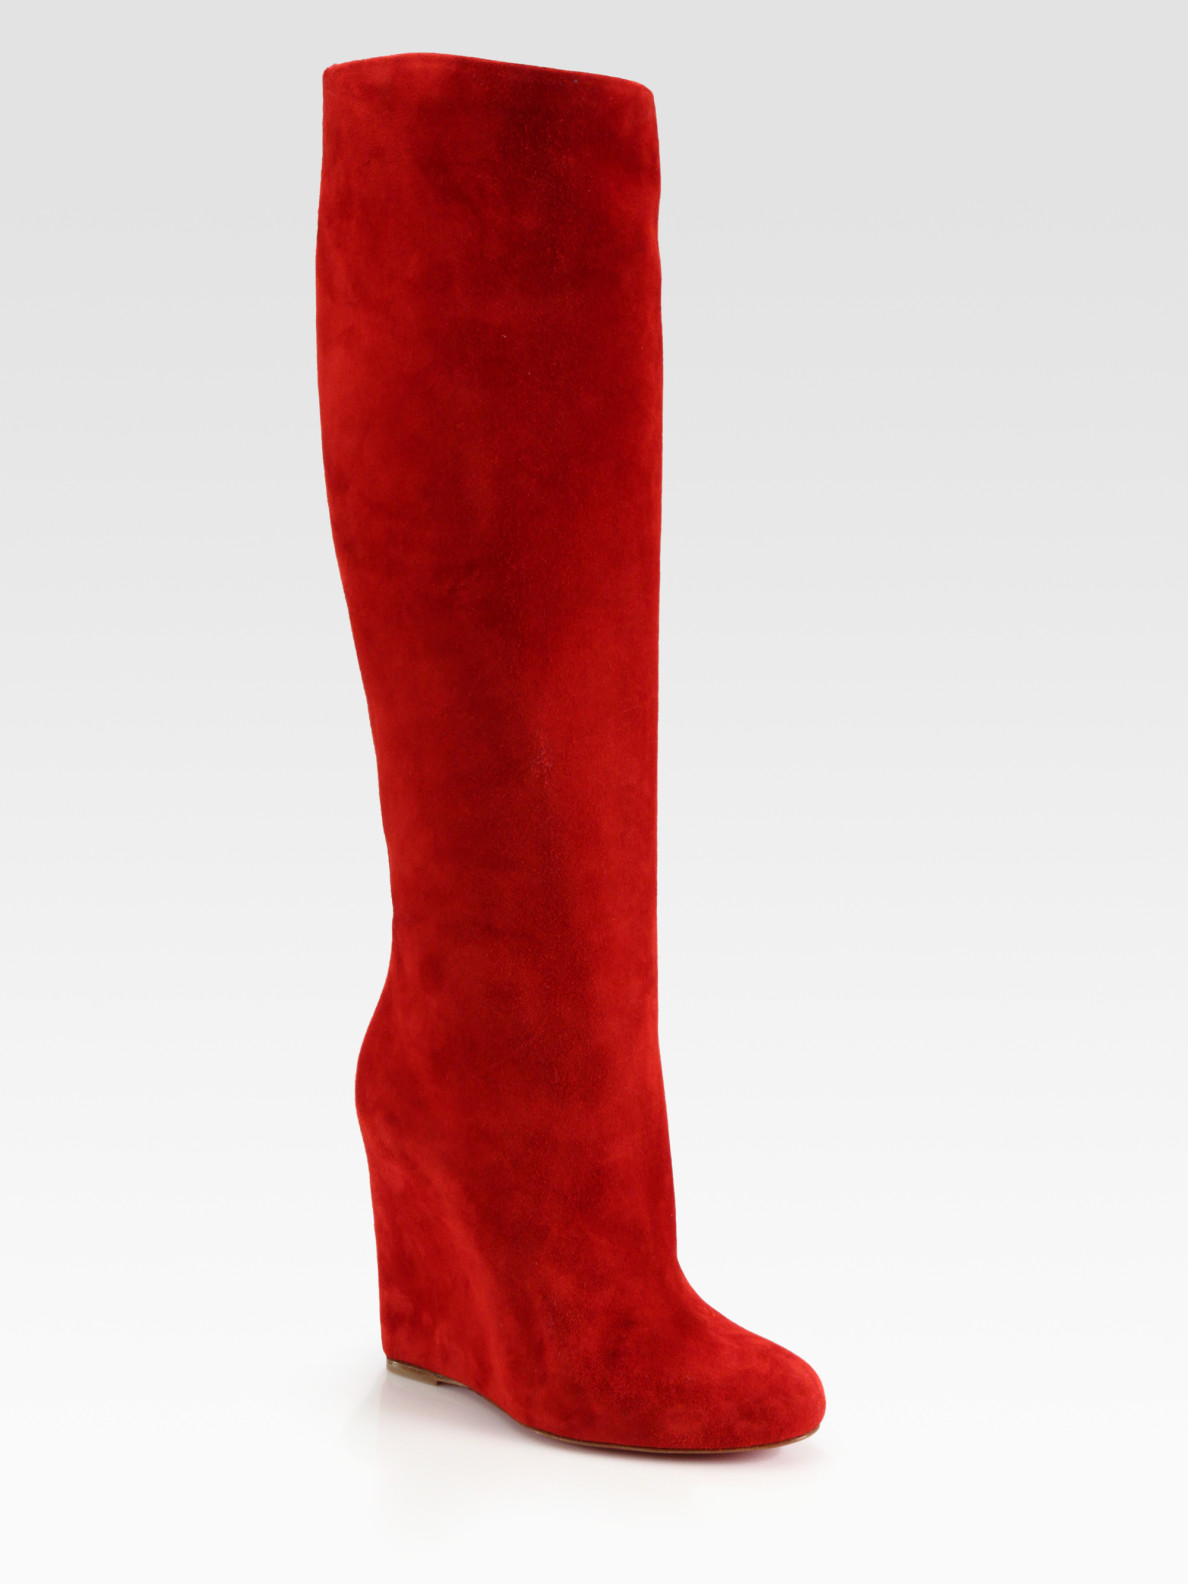 best christian louboutin replica sites - Christian louboutin Suede Wedge Kneehigh Boots in Red | Lyst